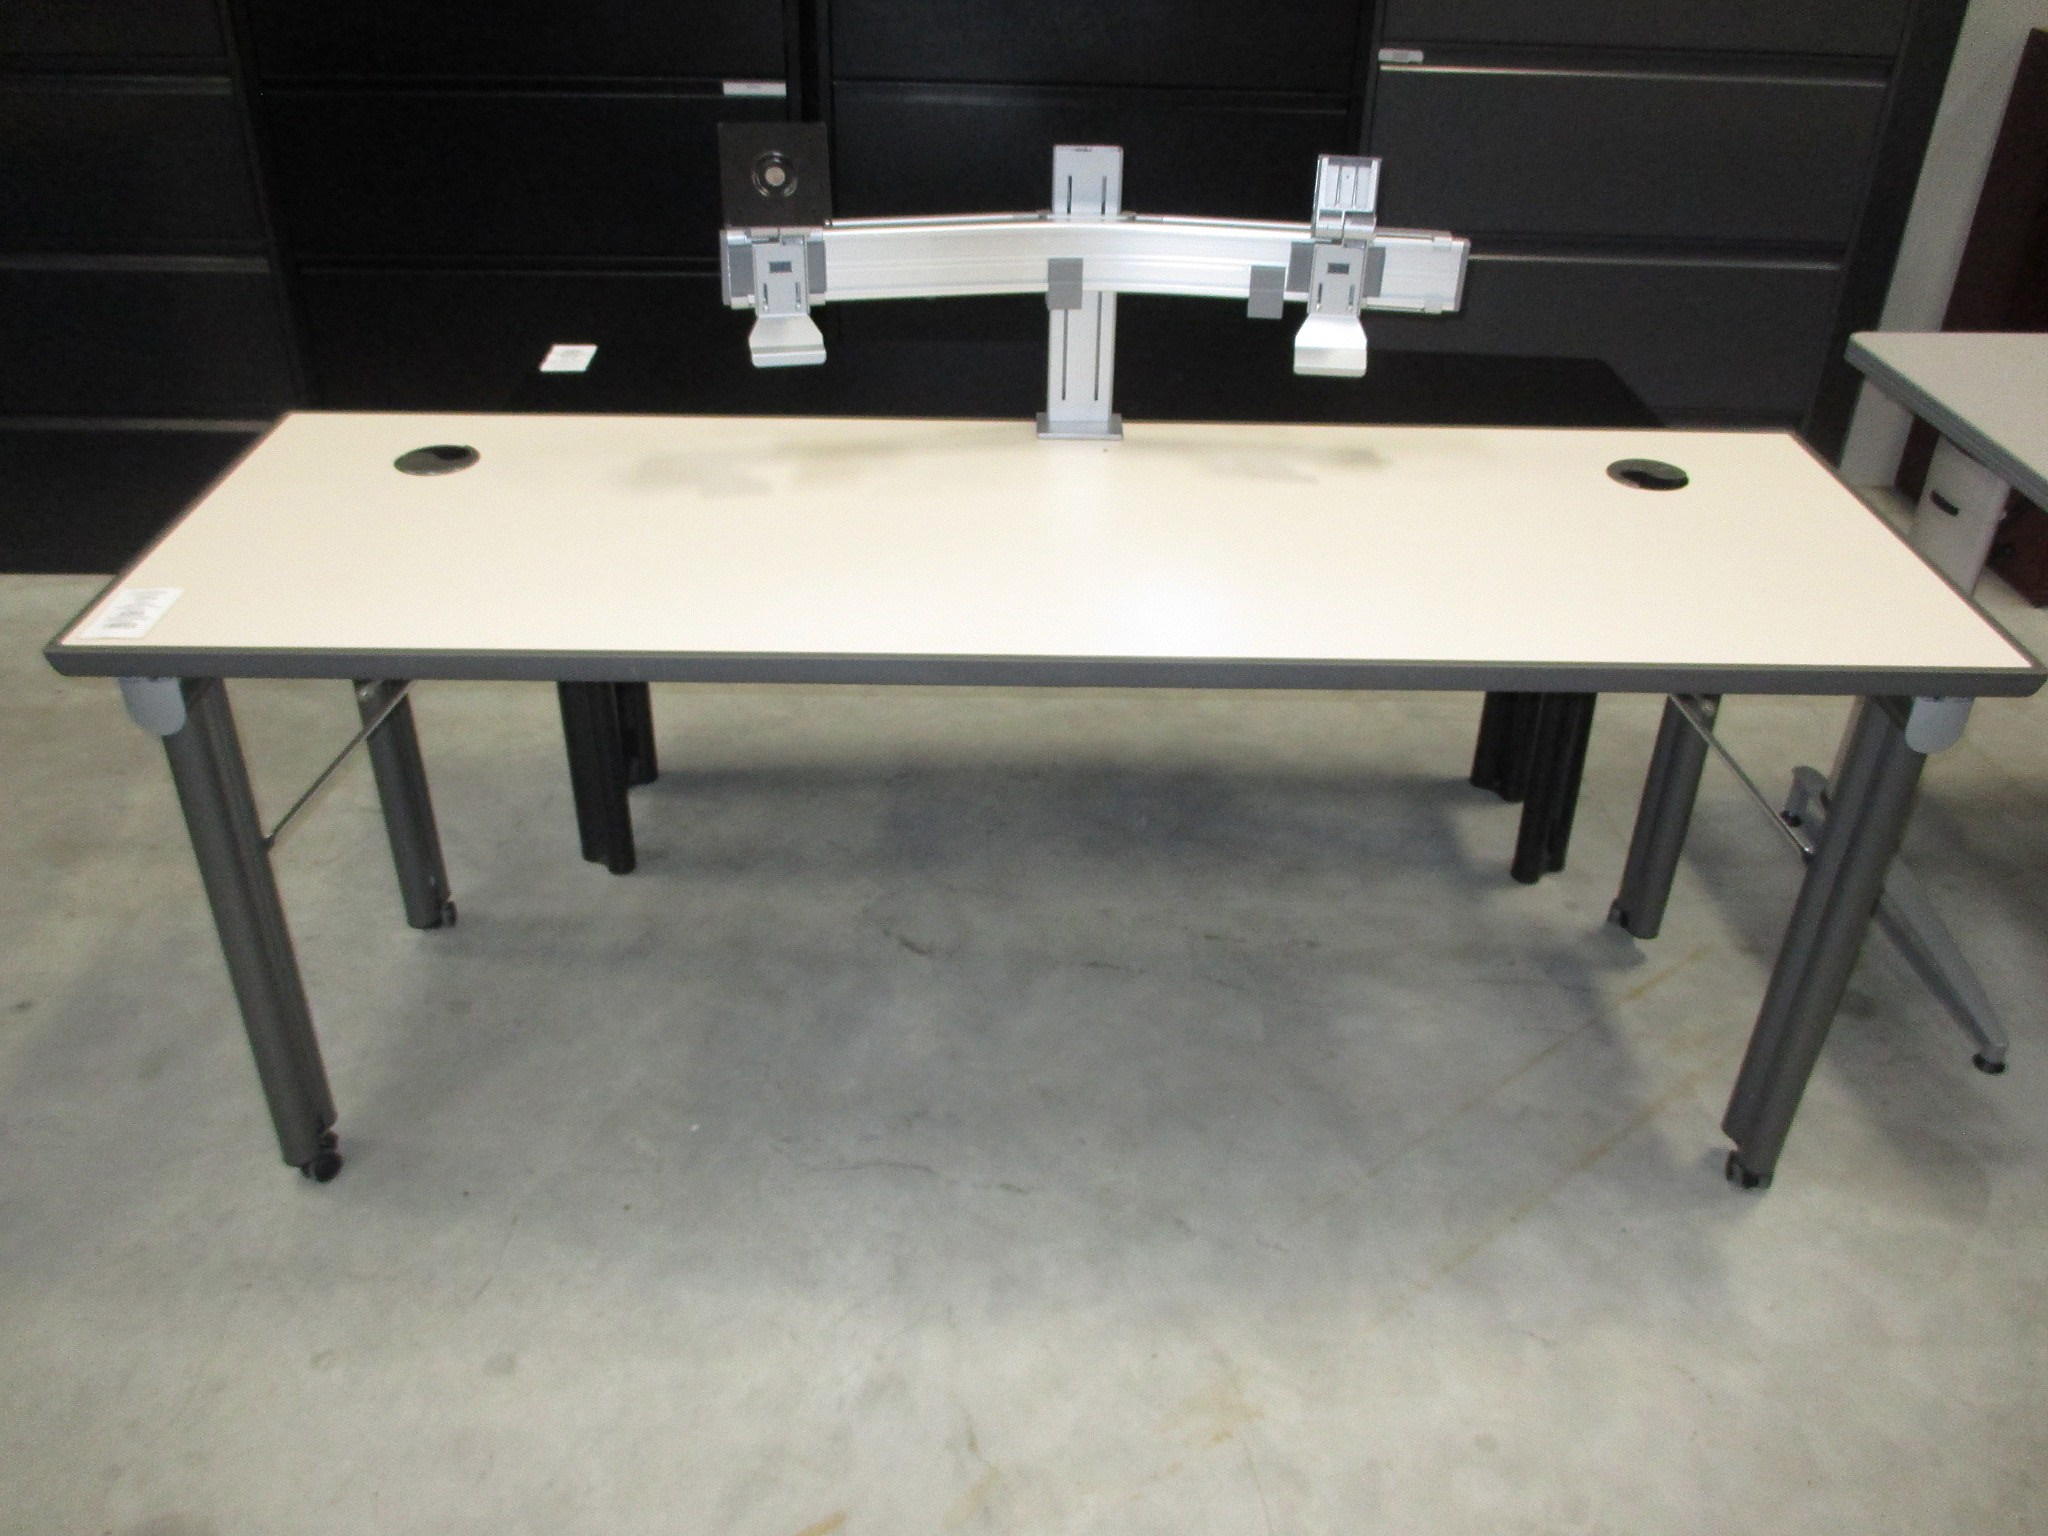 Knoll mobile training table